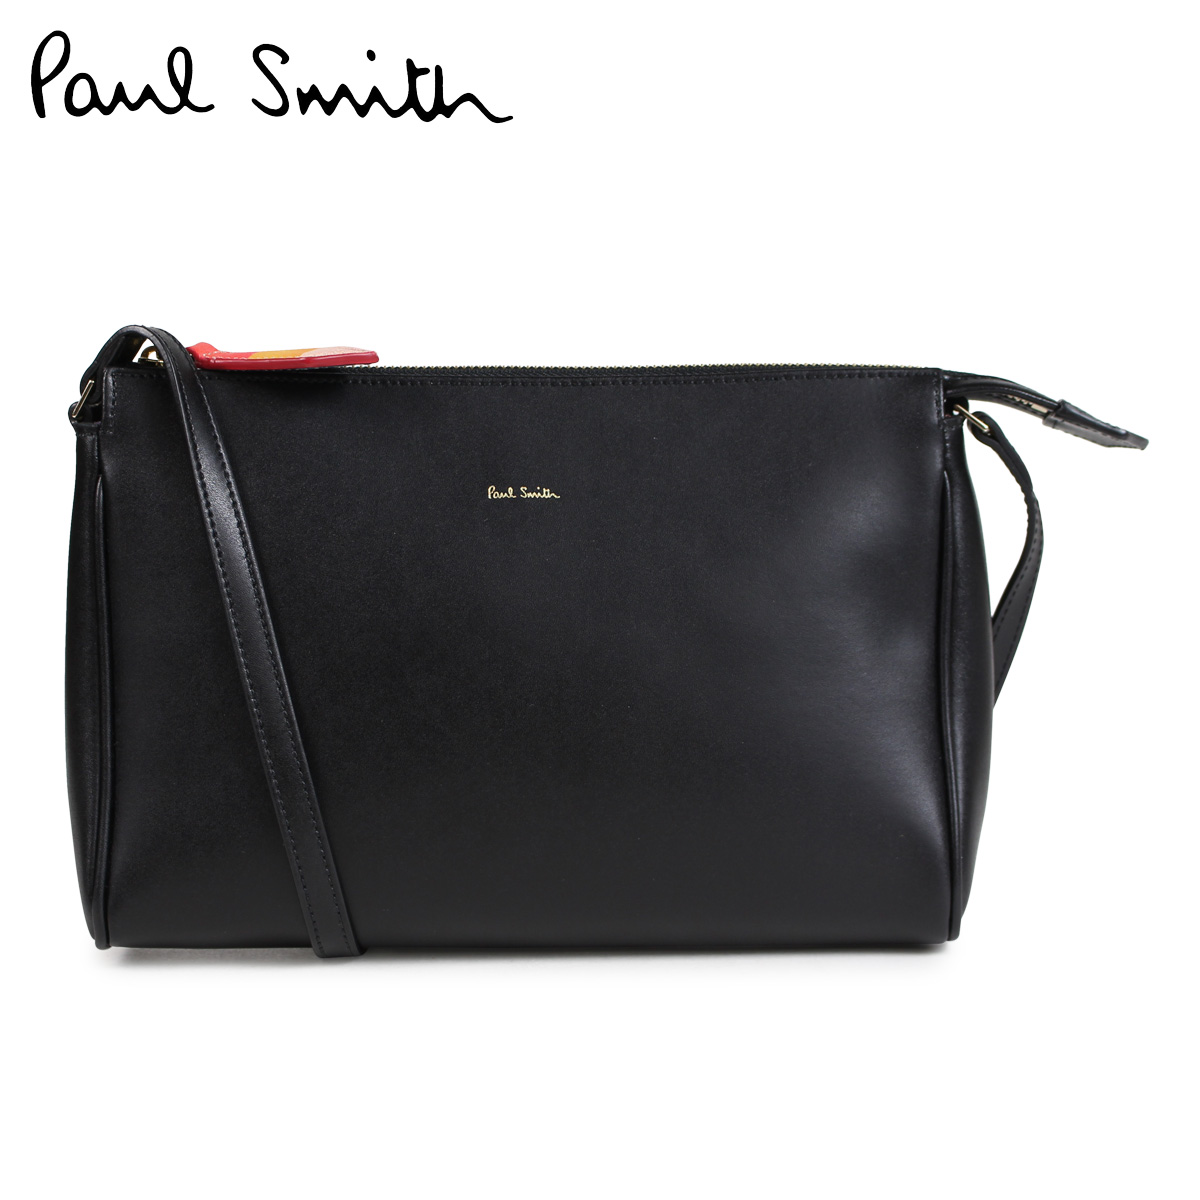 ef0b94e81b Sugar Online Shop  Paul Smith bag shoulder bag Lady s Paul Smith WOMEN BAG  POCHETTE black WSXC 4748 L809  12 4 Shinnyu load